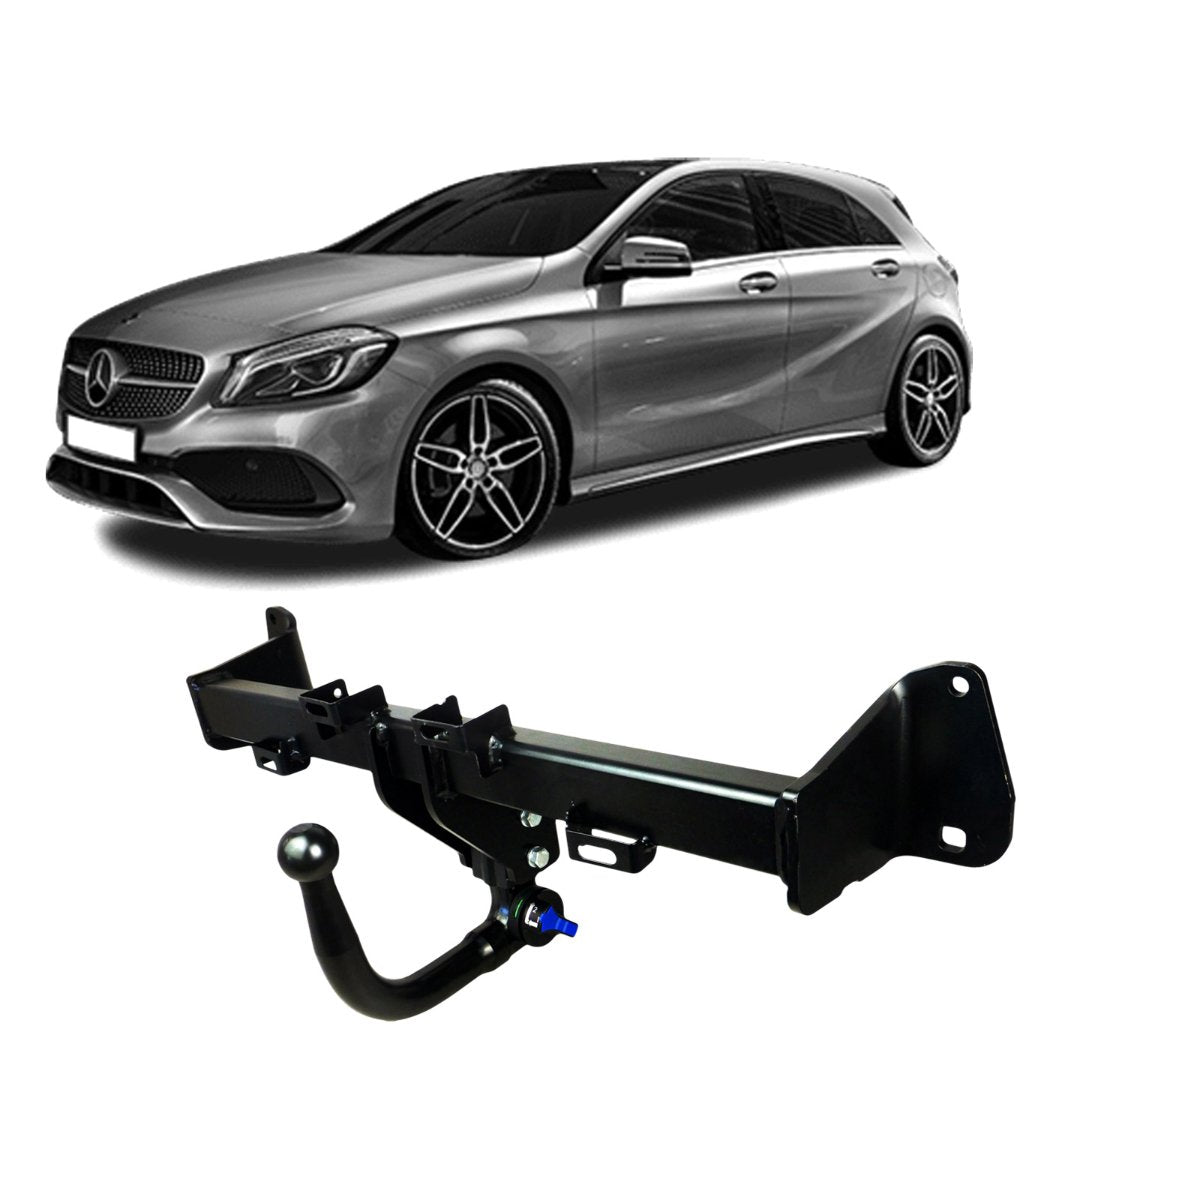 TAG Towbars European Style Tongue to suit MERCEDES-BENZ A-CLASS (07/2018 - on)